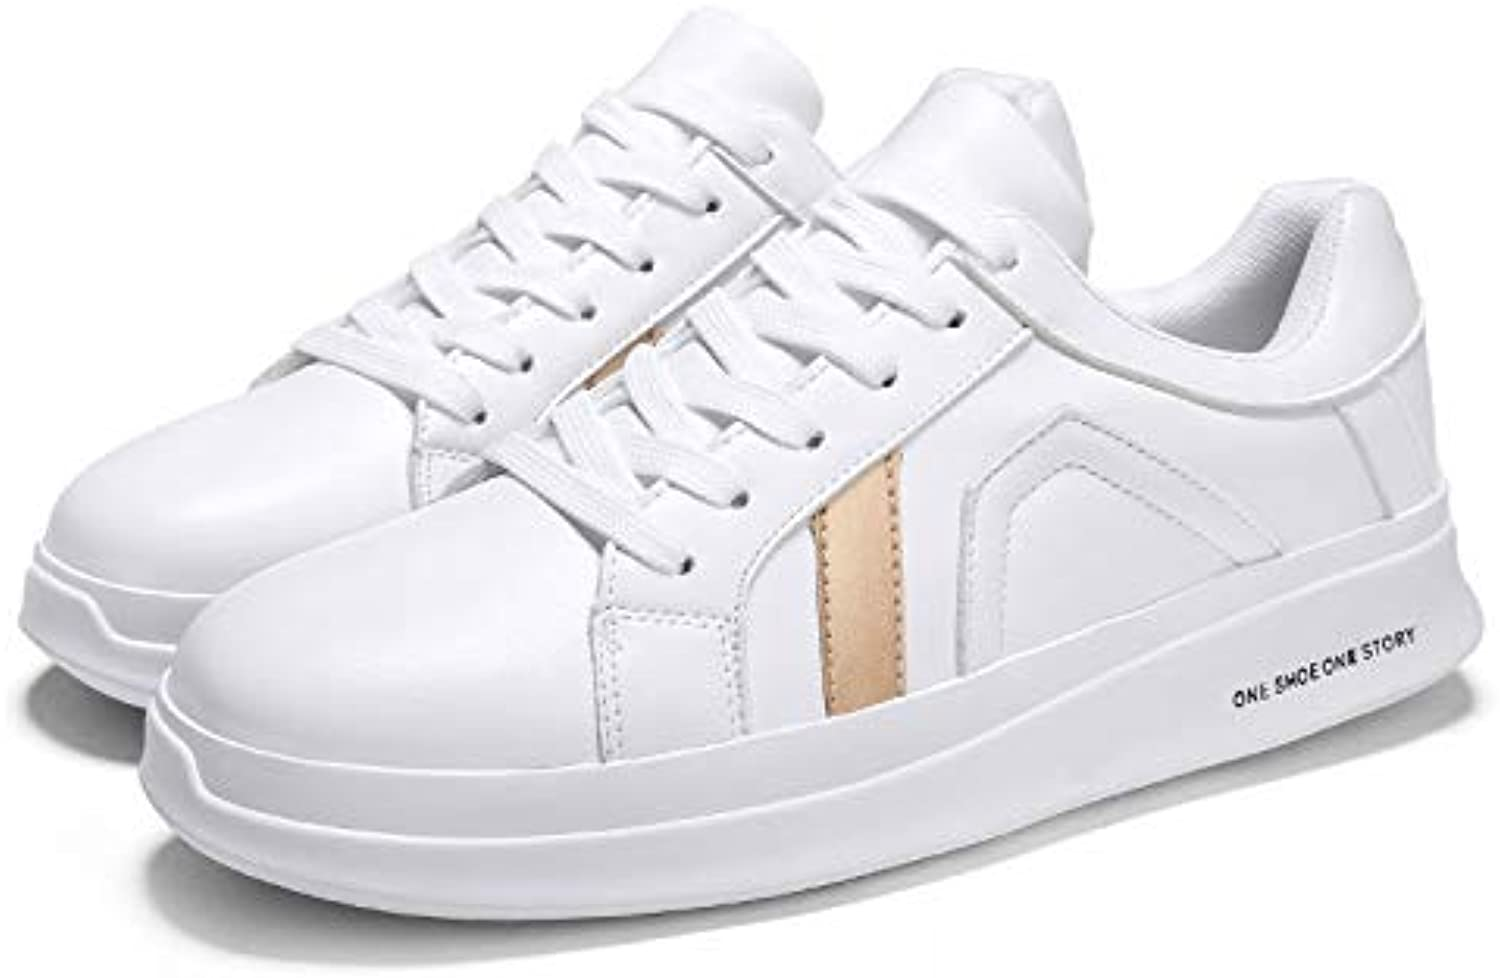 Huangyc Daily Lightweight and Comfortable Low-top Fashion Outdoor Sport Casual shoes for Men